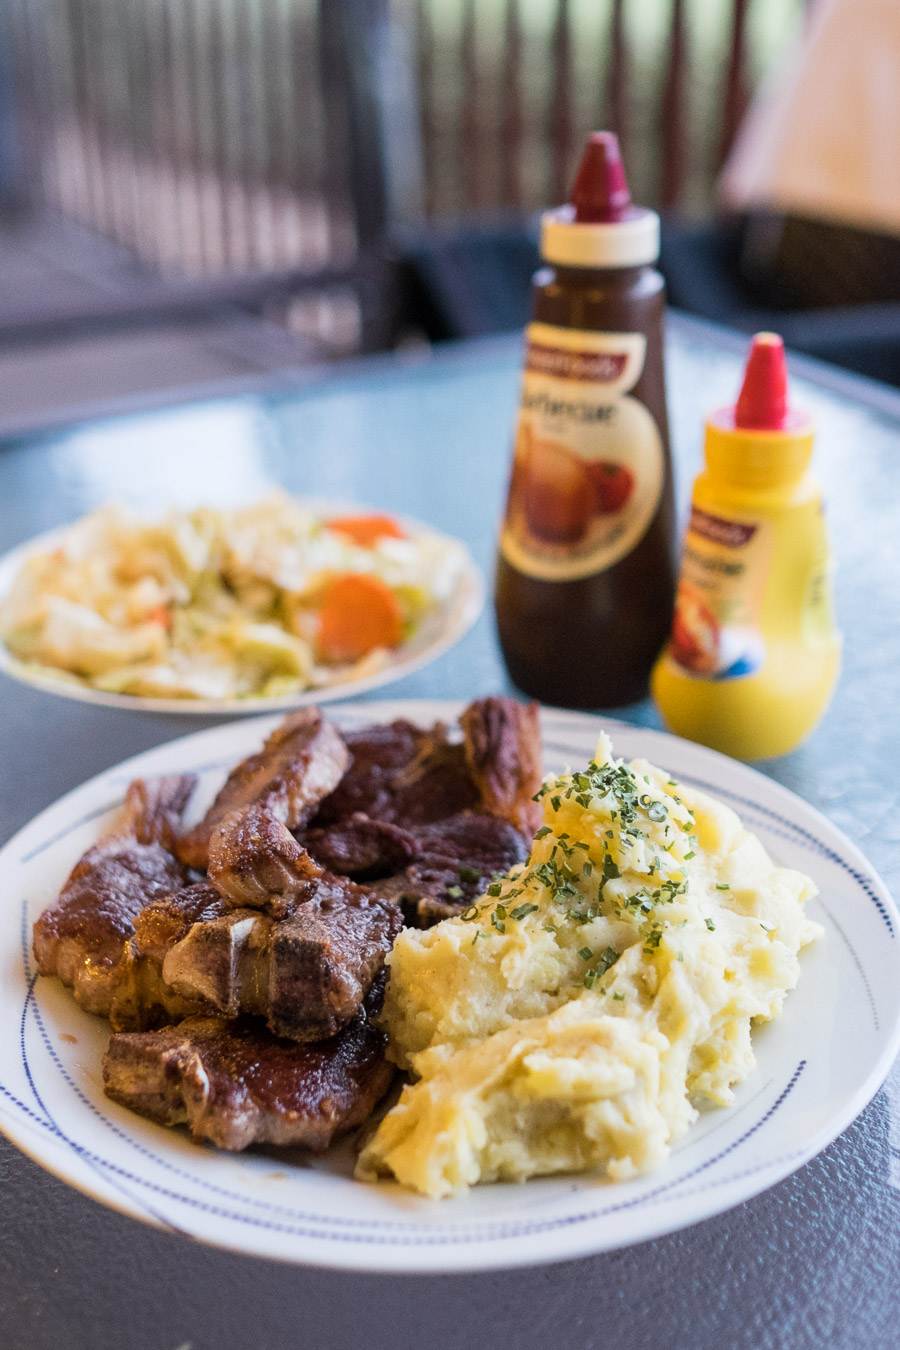 Lamb chops and mashed potatoes